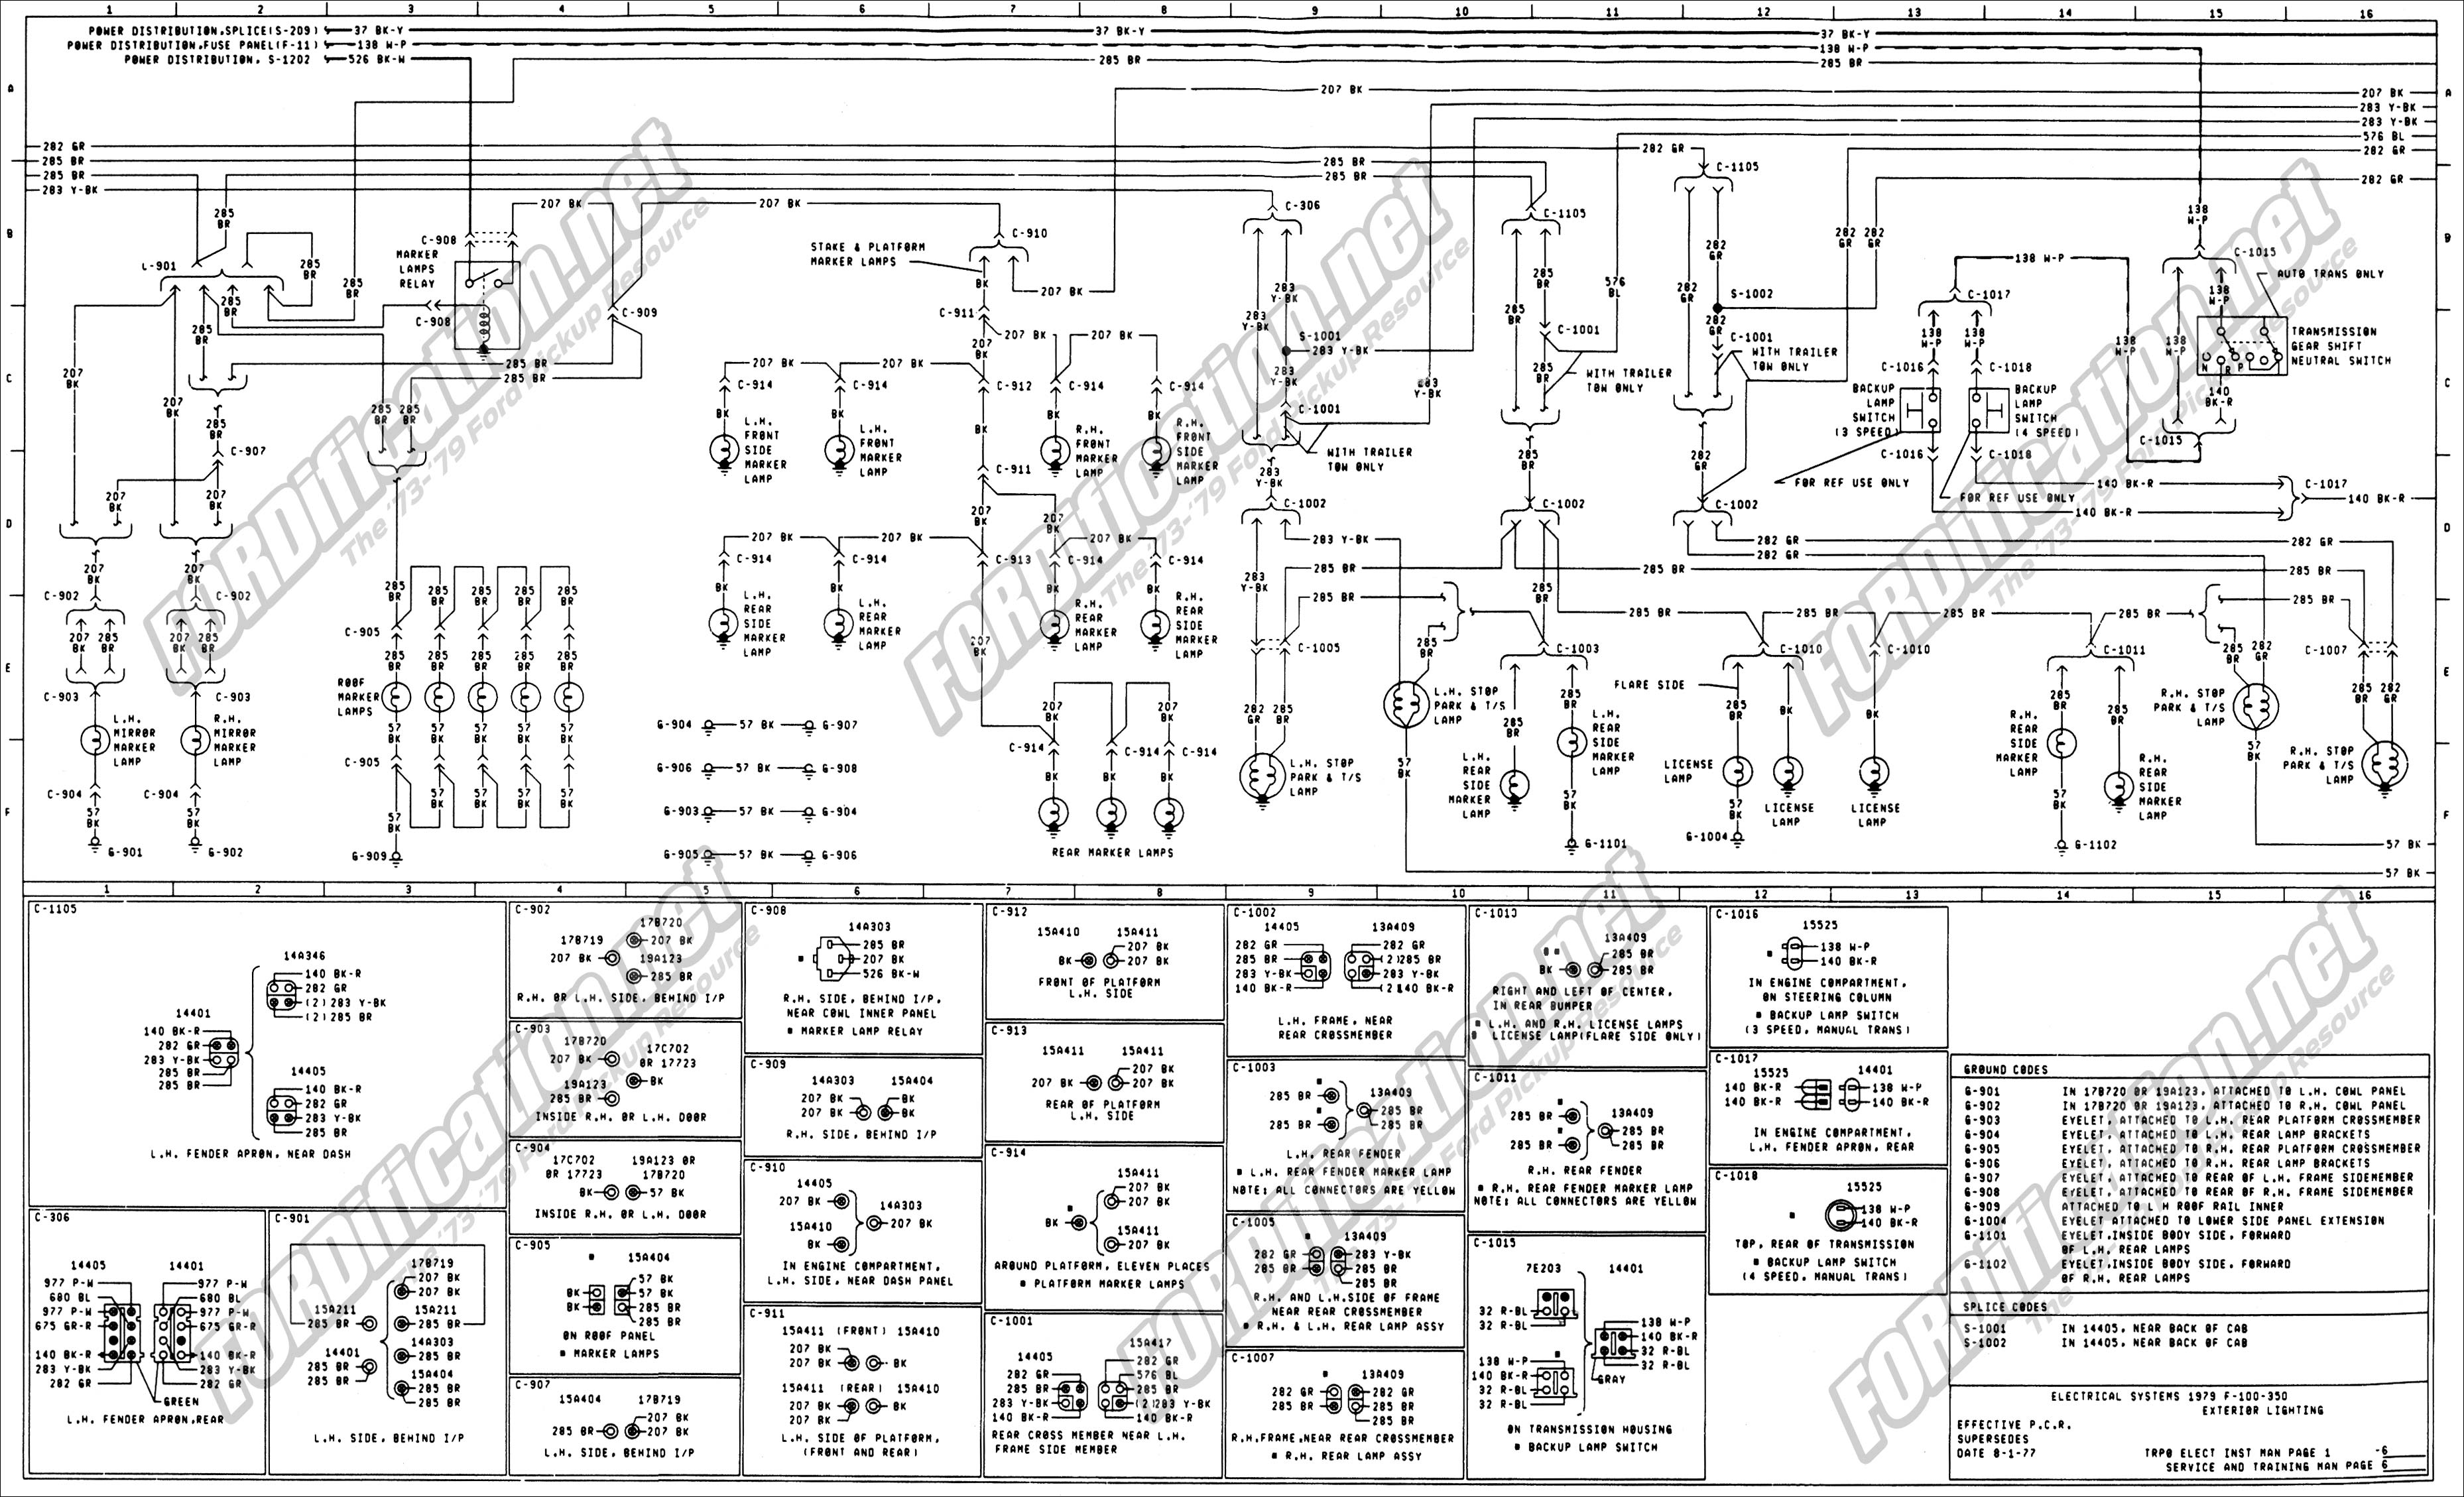 wiring_79master_6of9 1995 ford l9000 wiring schematic ford l9000 fuse \u2022 wiring diagrams ford truck wiring diagrams free at readyjetset.co